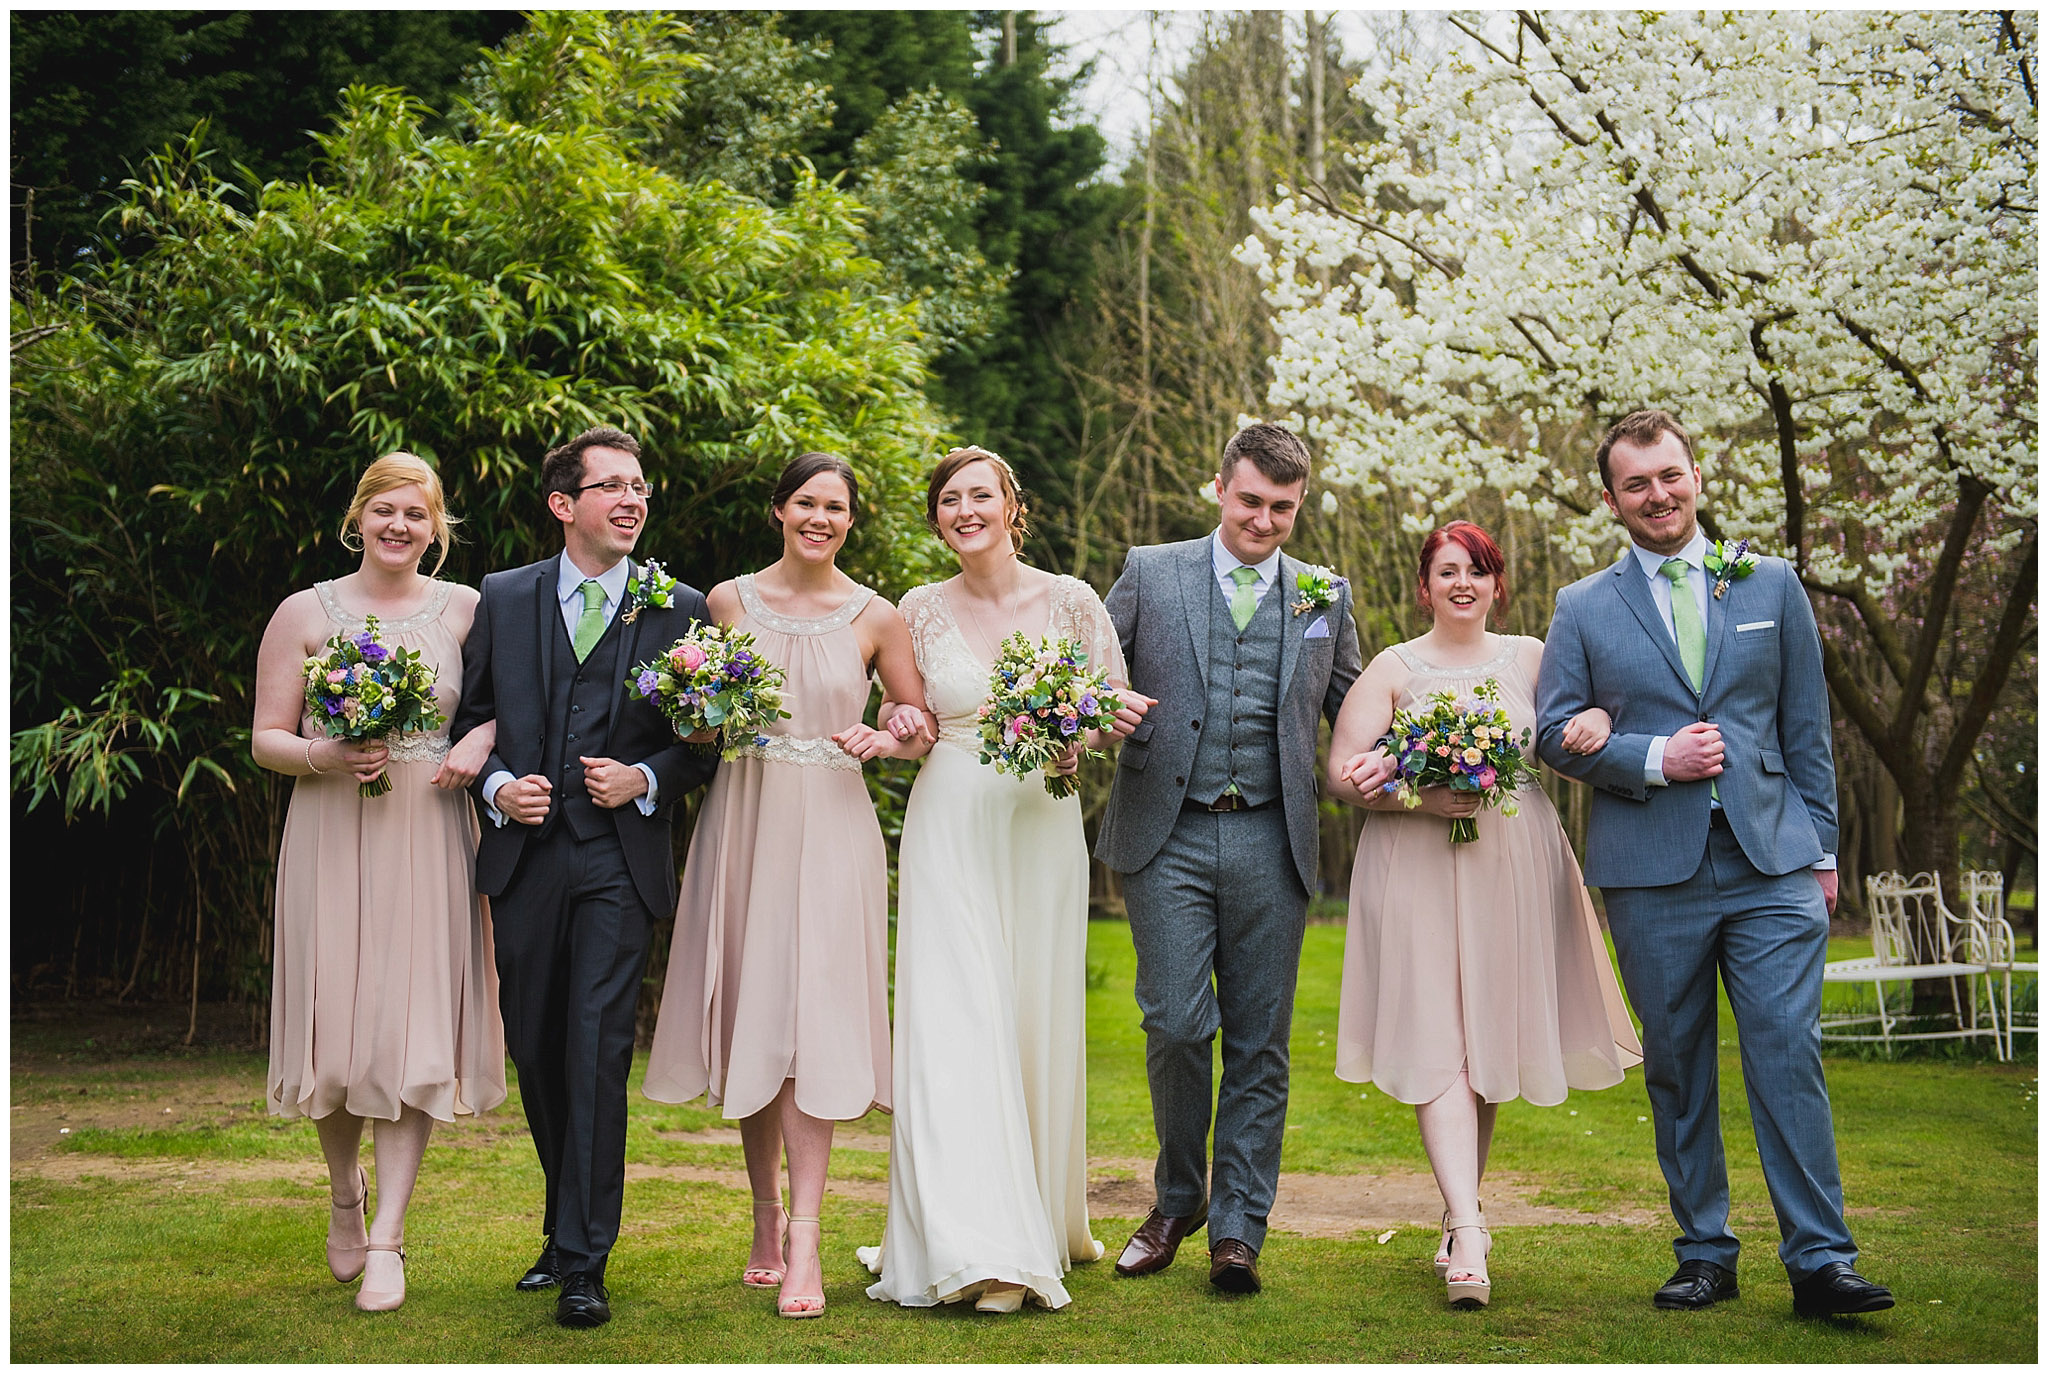 Sarah-&-Dan-The-Old-Vicarage-Wedding-Venue-Dorset-Photographer-27